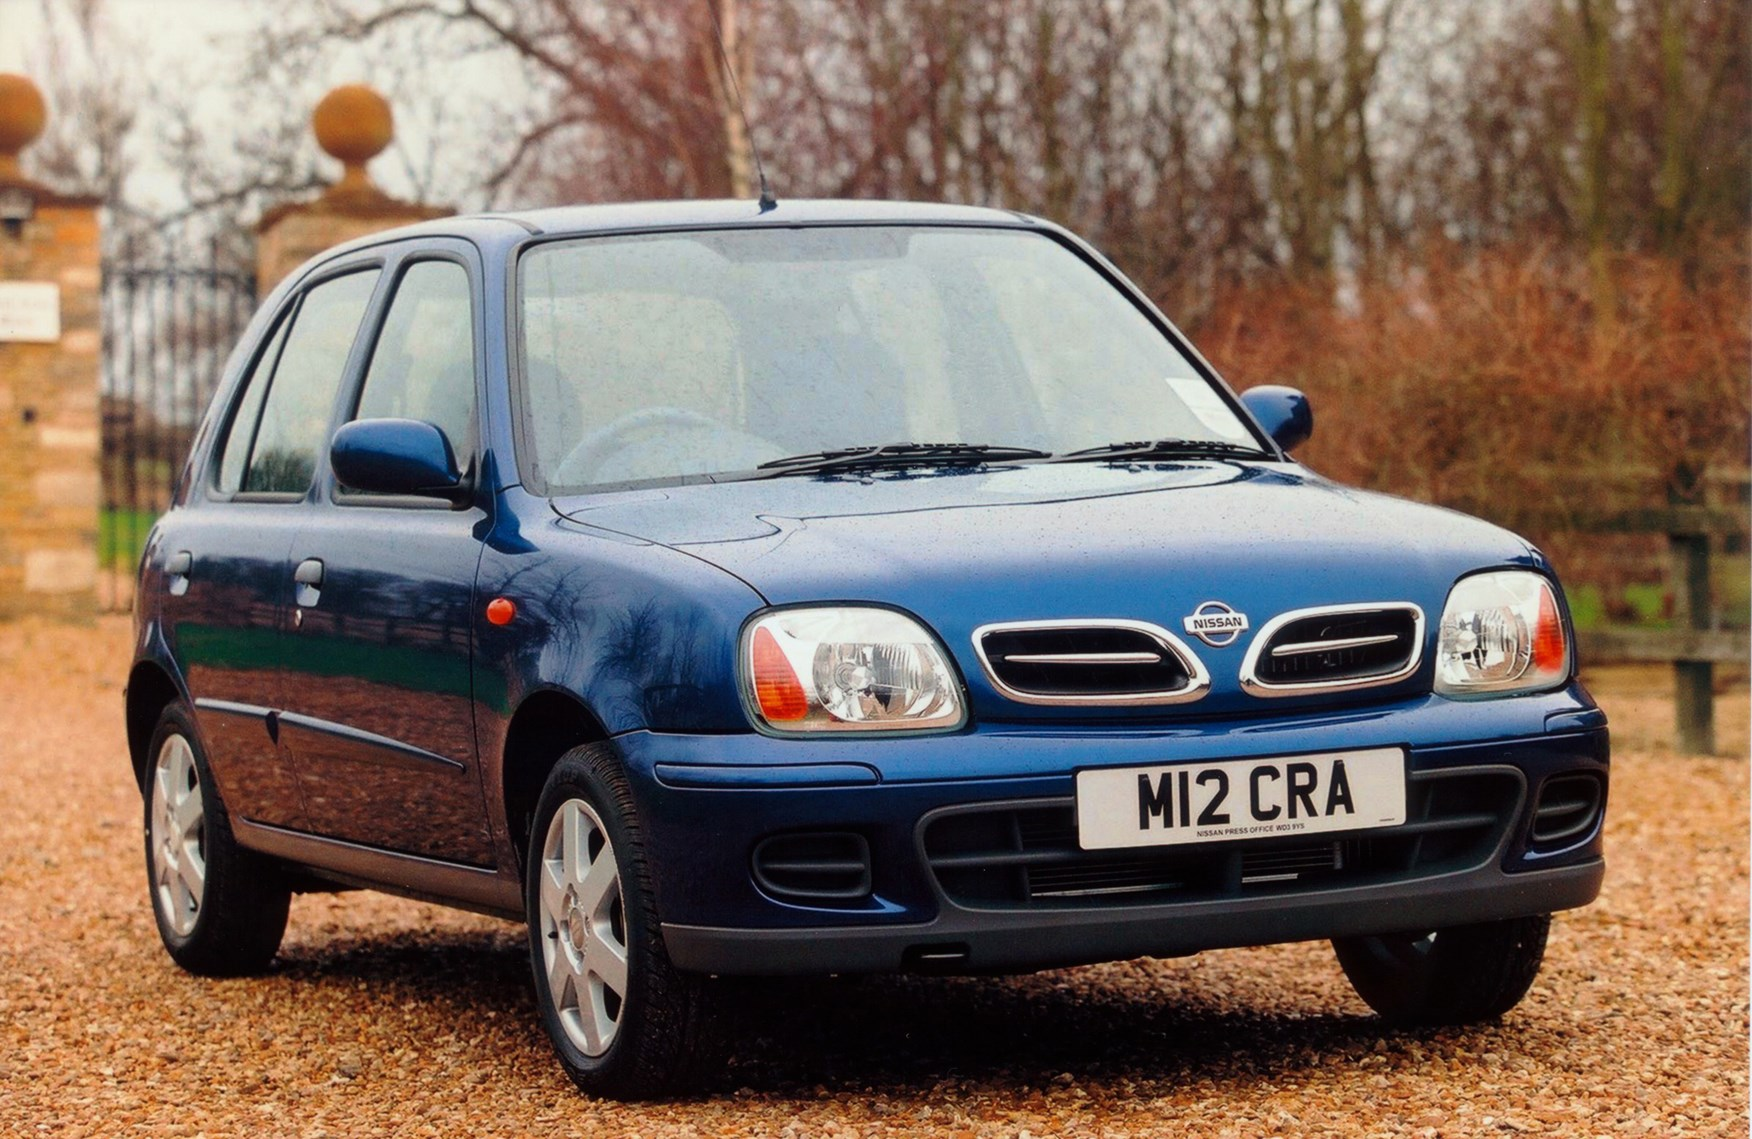 nissan micra hatchback review 1993 2002 parkers. Black Bedroom Furniture Sets. Home Design Ideas